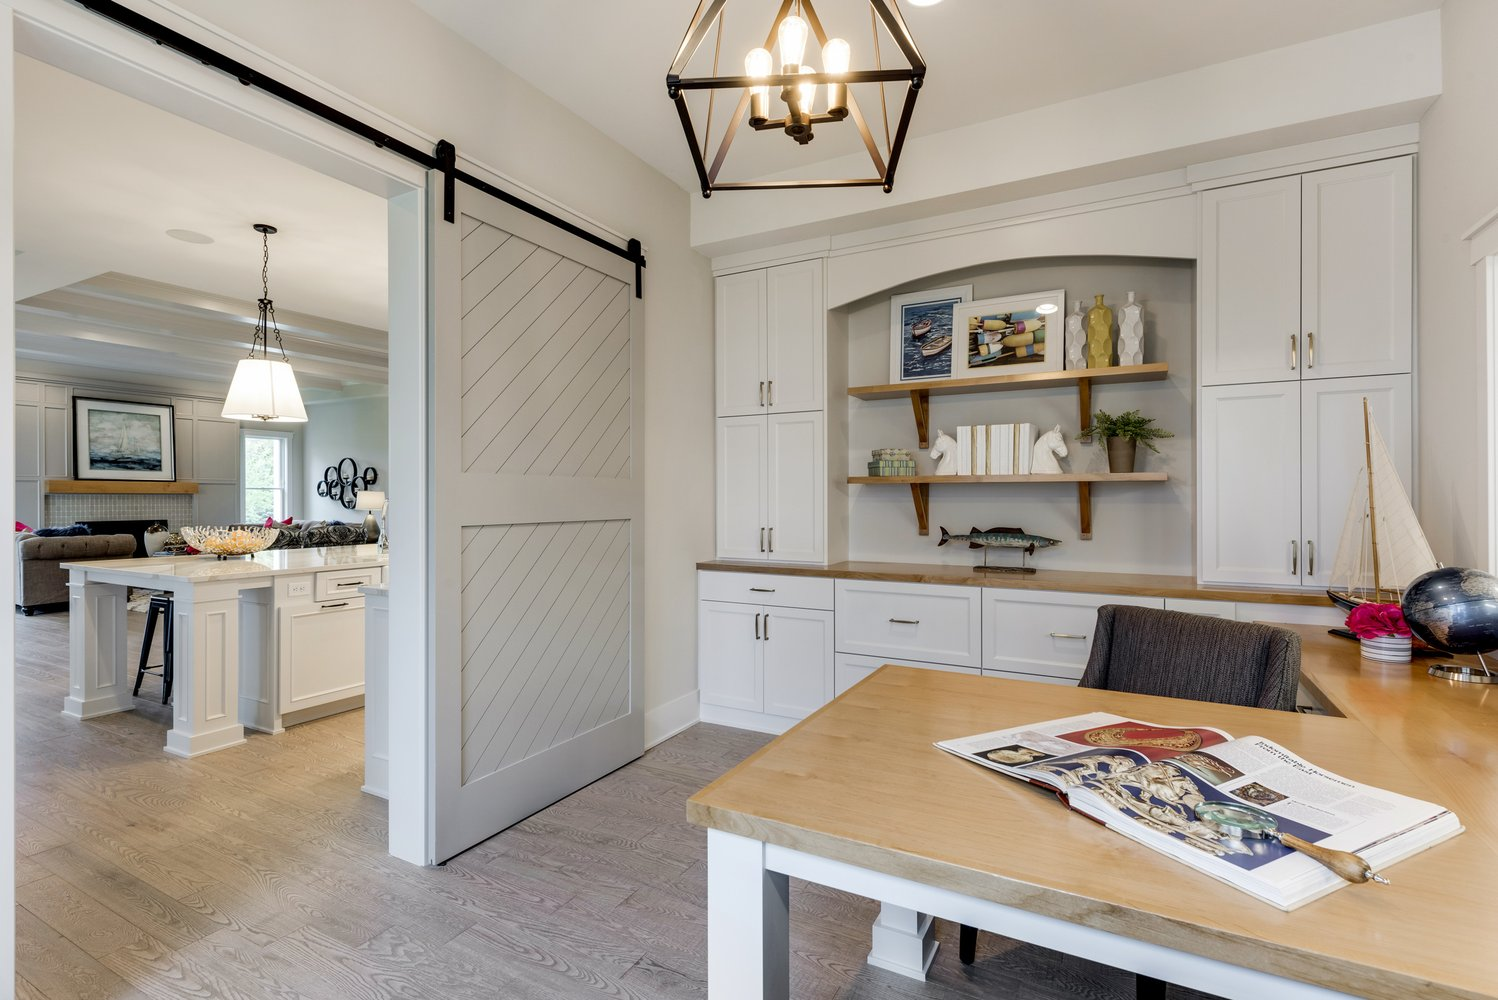 Barn Door to Home Office